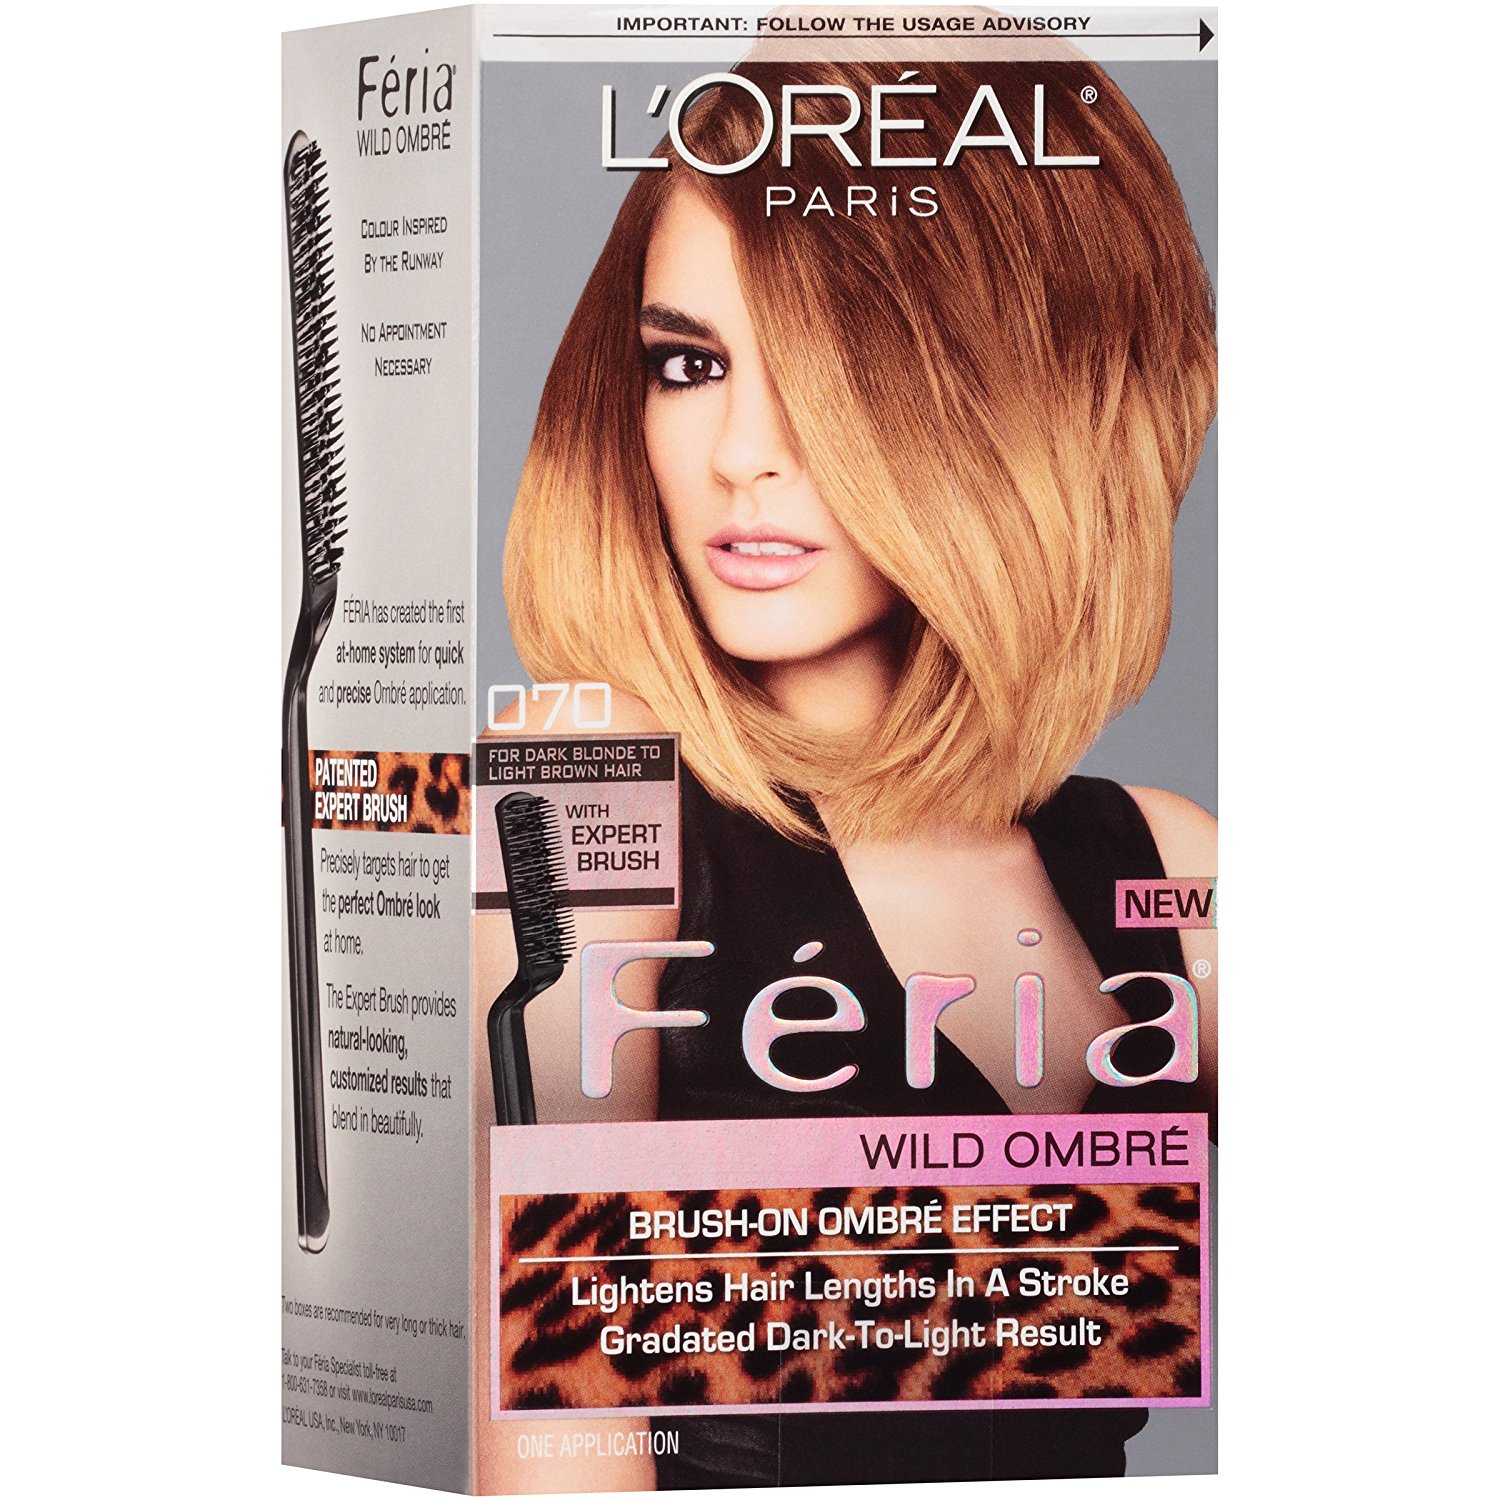 Feria Brush-on Ombre Effect Hair Color, O70 Wild Ombre for Dark Blonde to Light Brown Hair (Packaging May Vary) By LOreal Paris